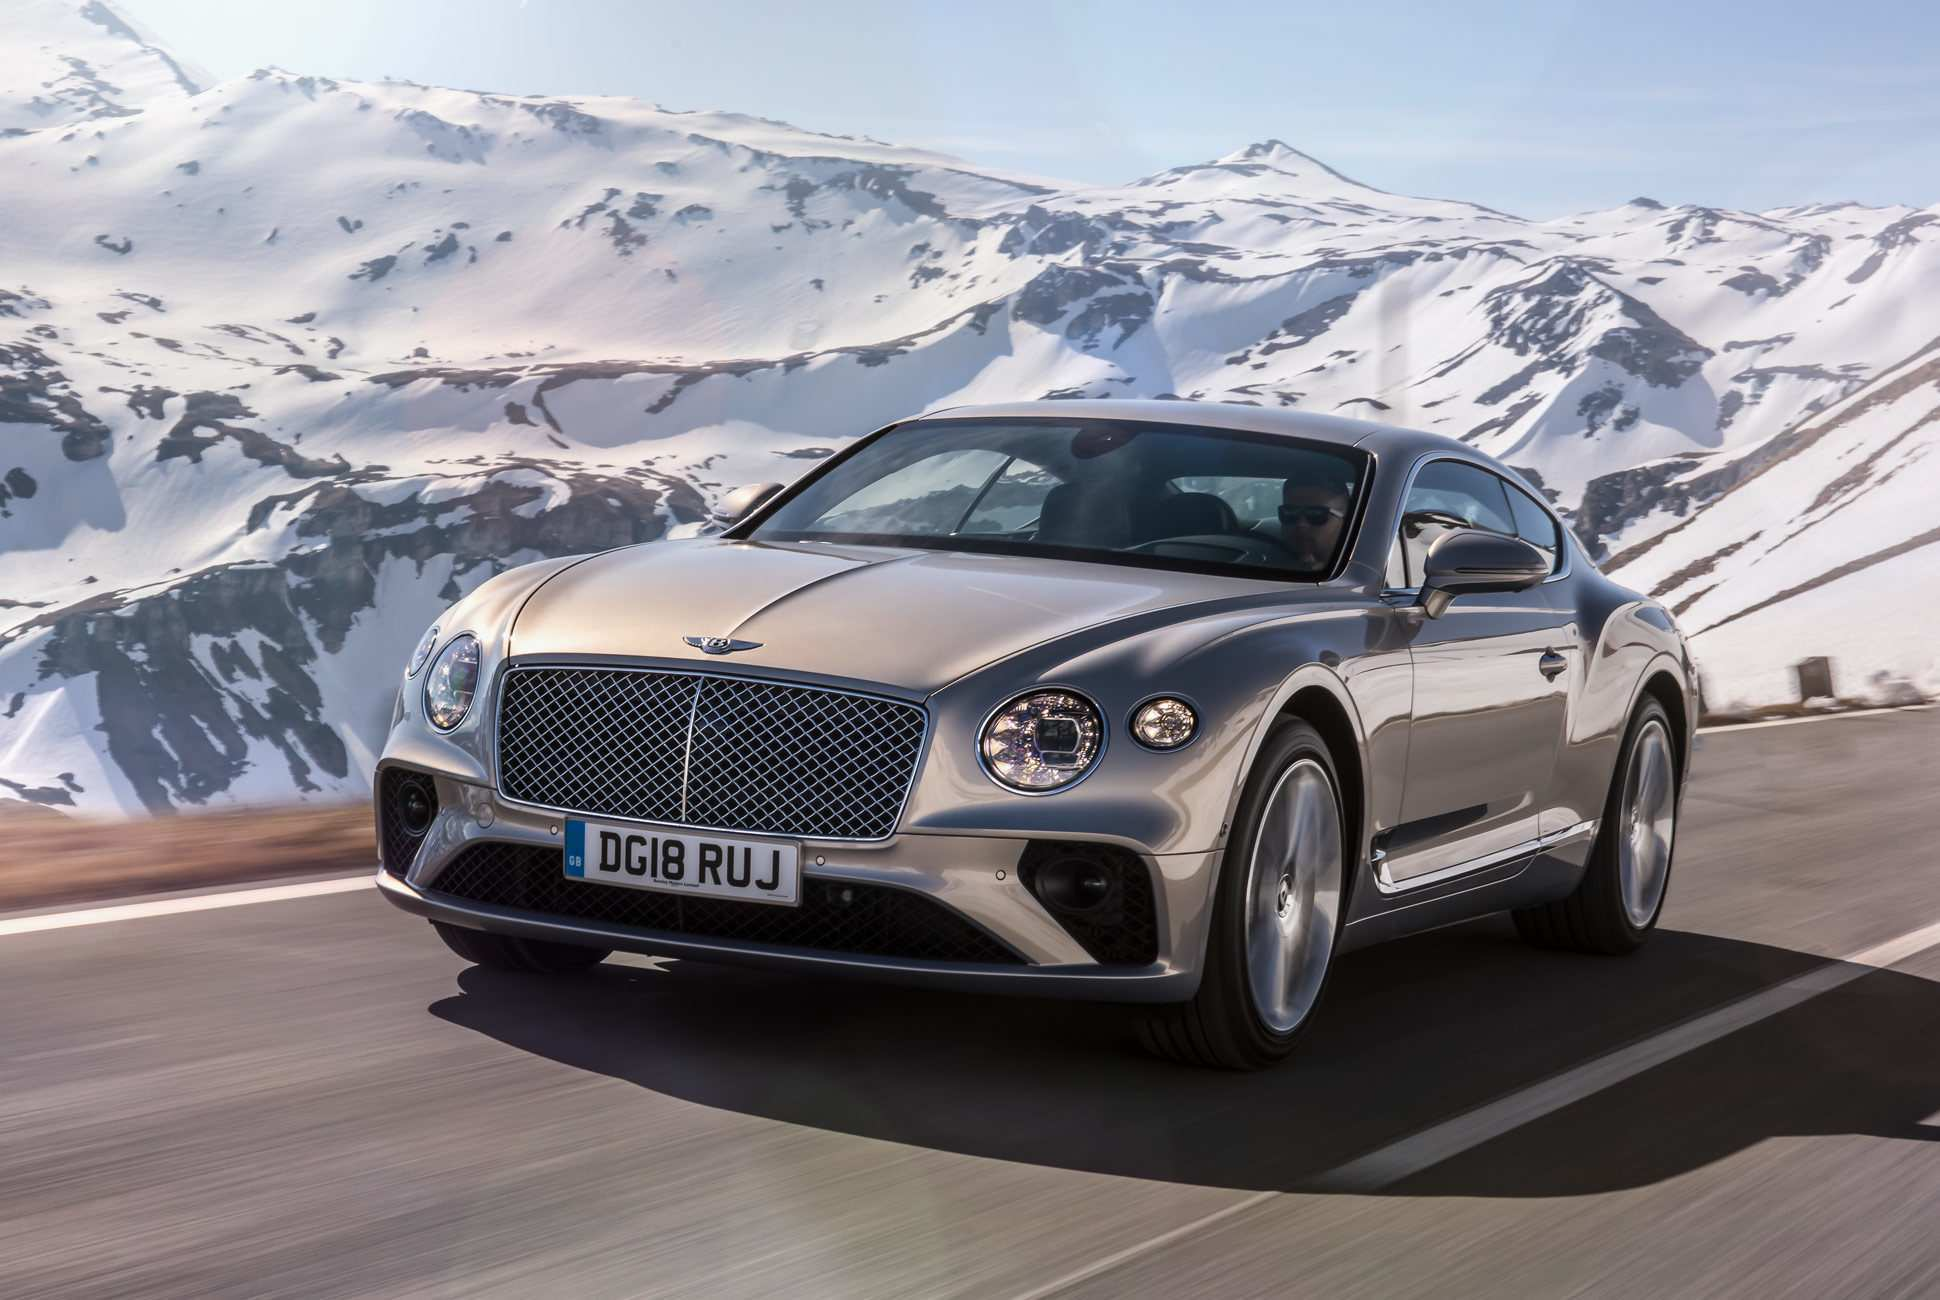 26 New 2019 Bentley Continental Images with 2019 Bentley Continental